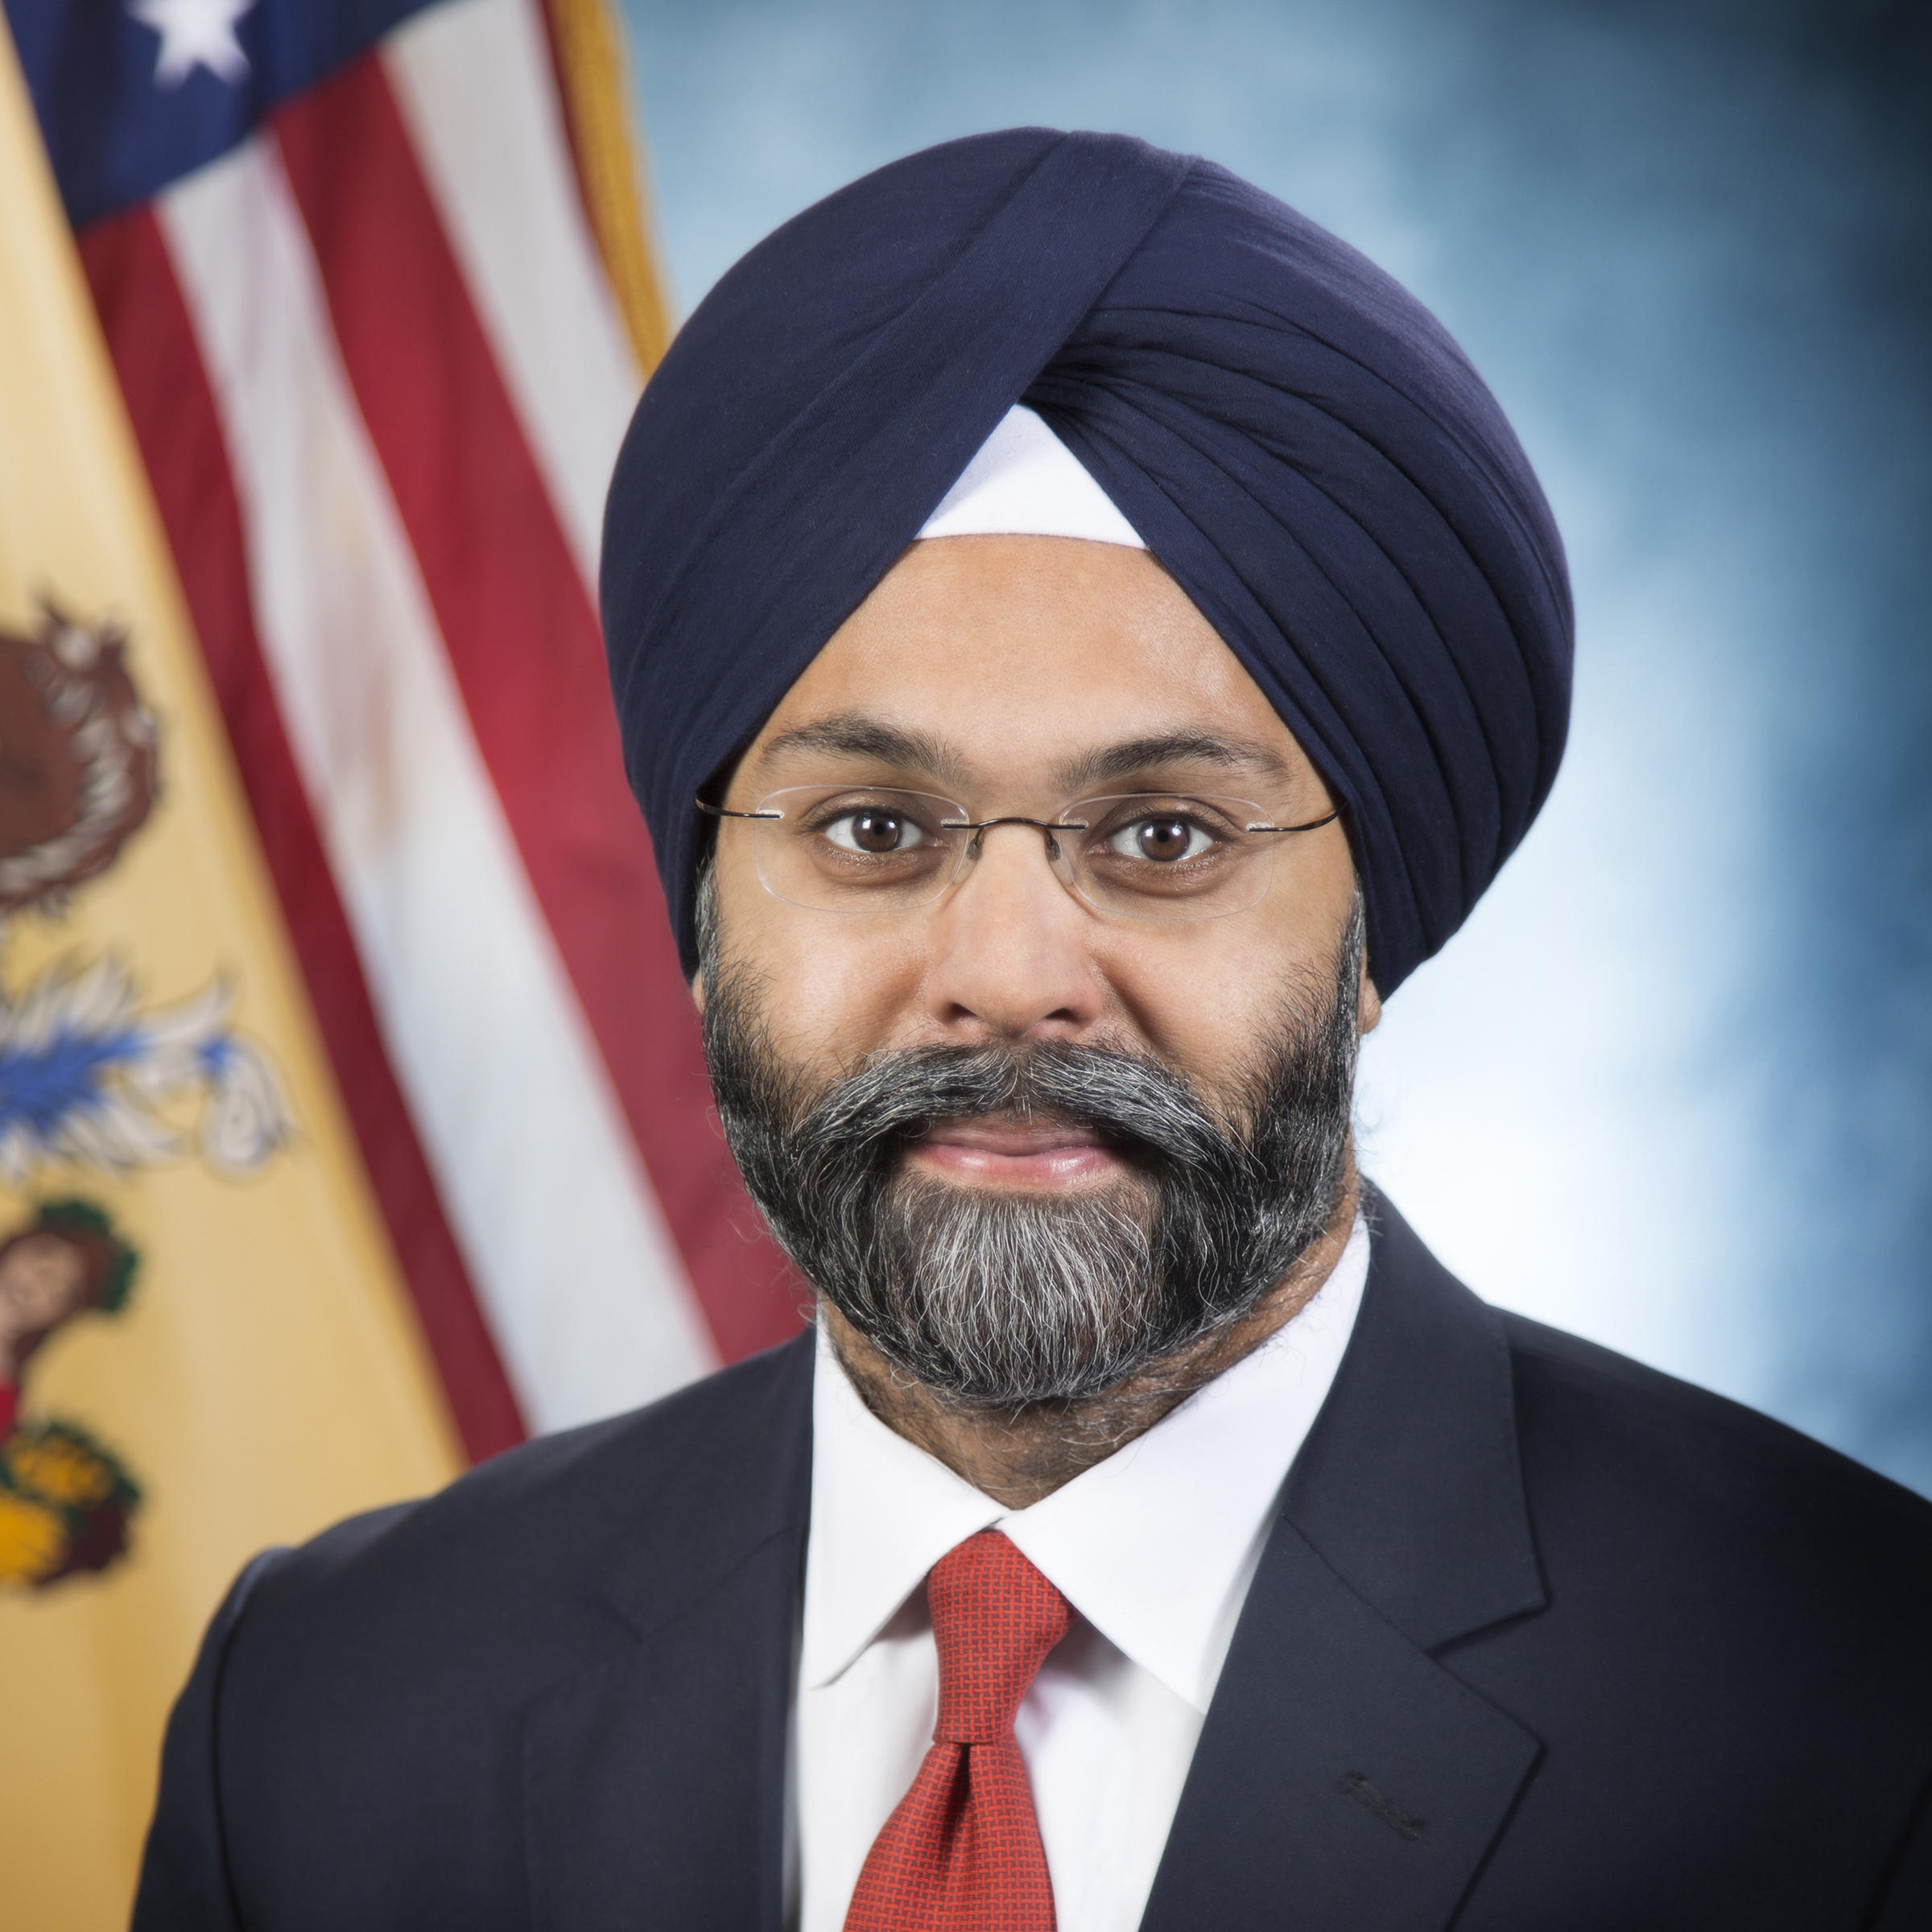 b8f343d3859 New Jersey s Attorney General Gurbir S. Grewal in an official photo taken  in Trenton